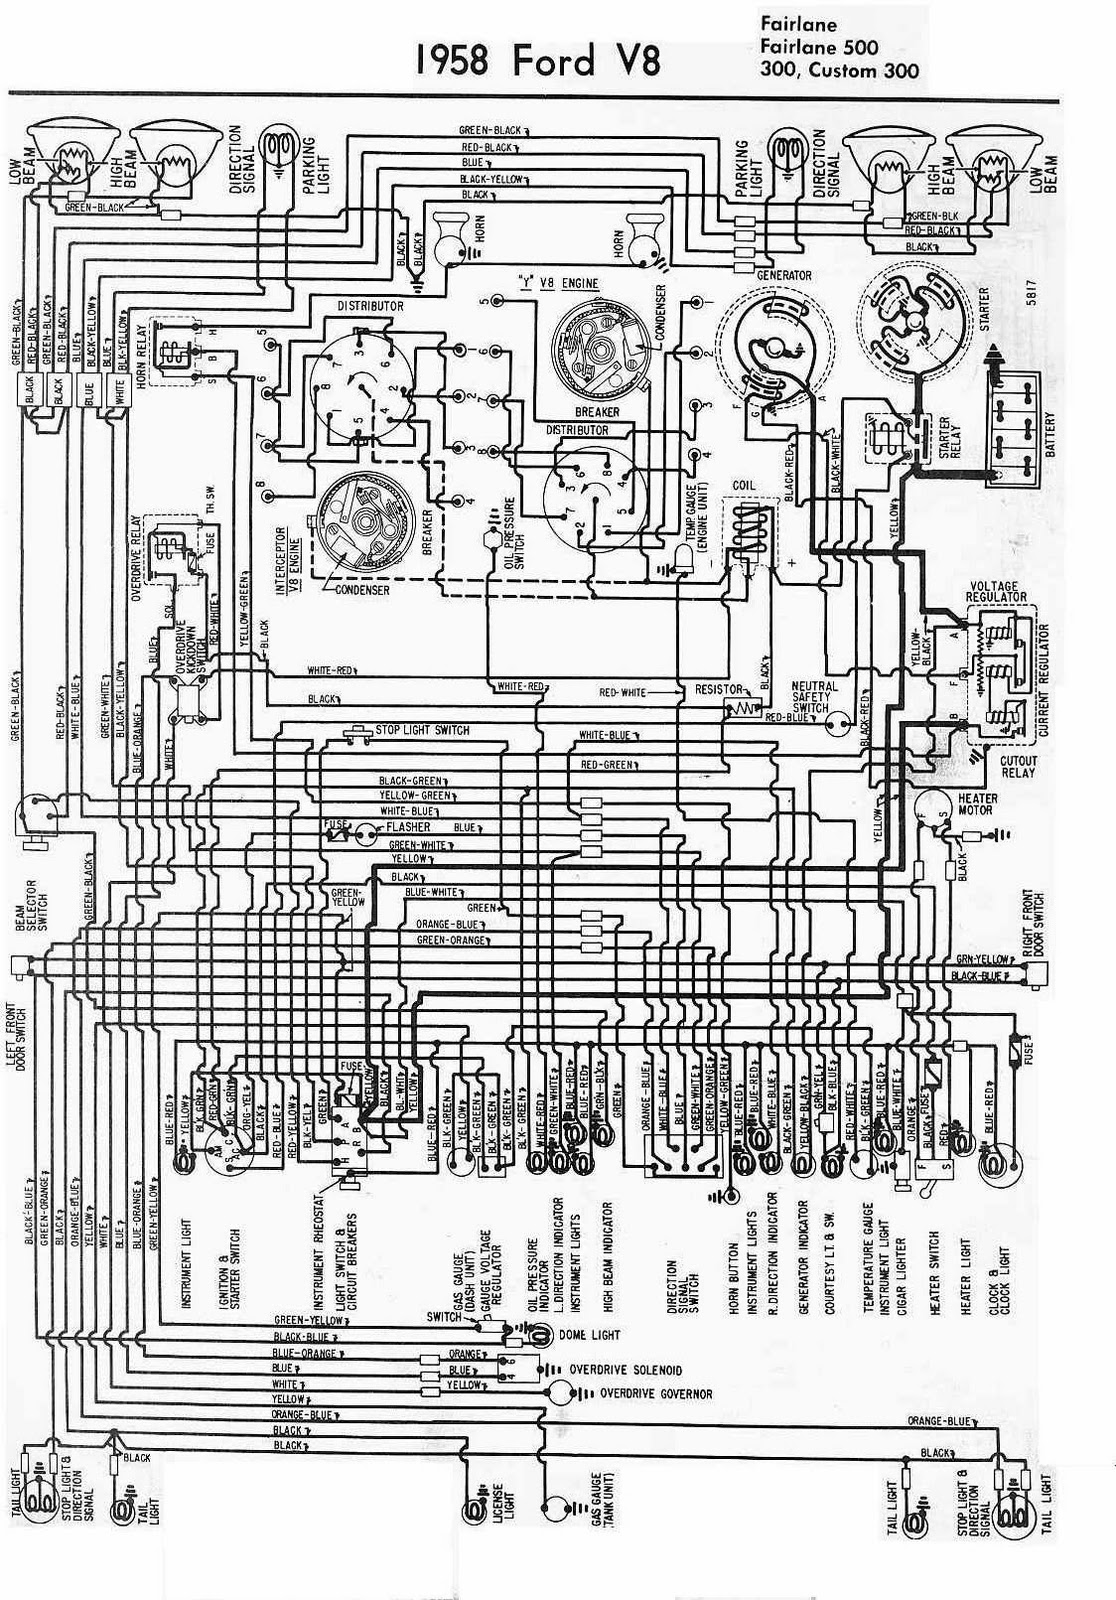 1955 ford thunderbird also ford falcon fuse panel diagram 1966 ford thunderbird fuse panel diagram as well 1958 ford thunderbird [ 1116 x 1600 Pixel ]